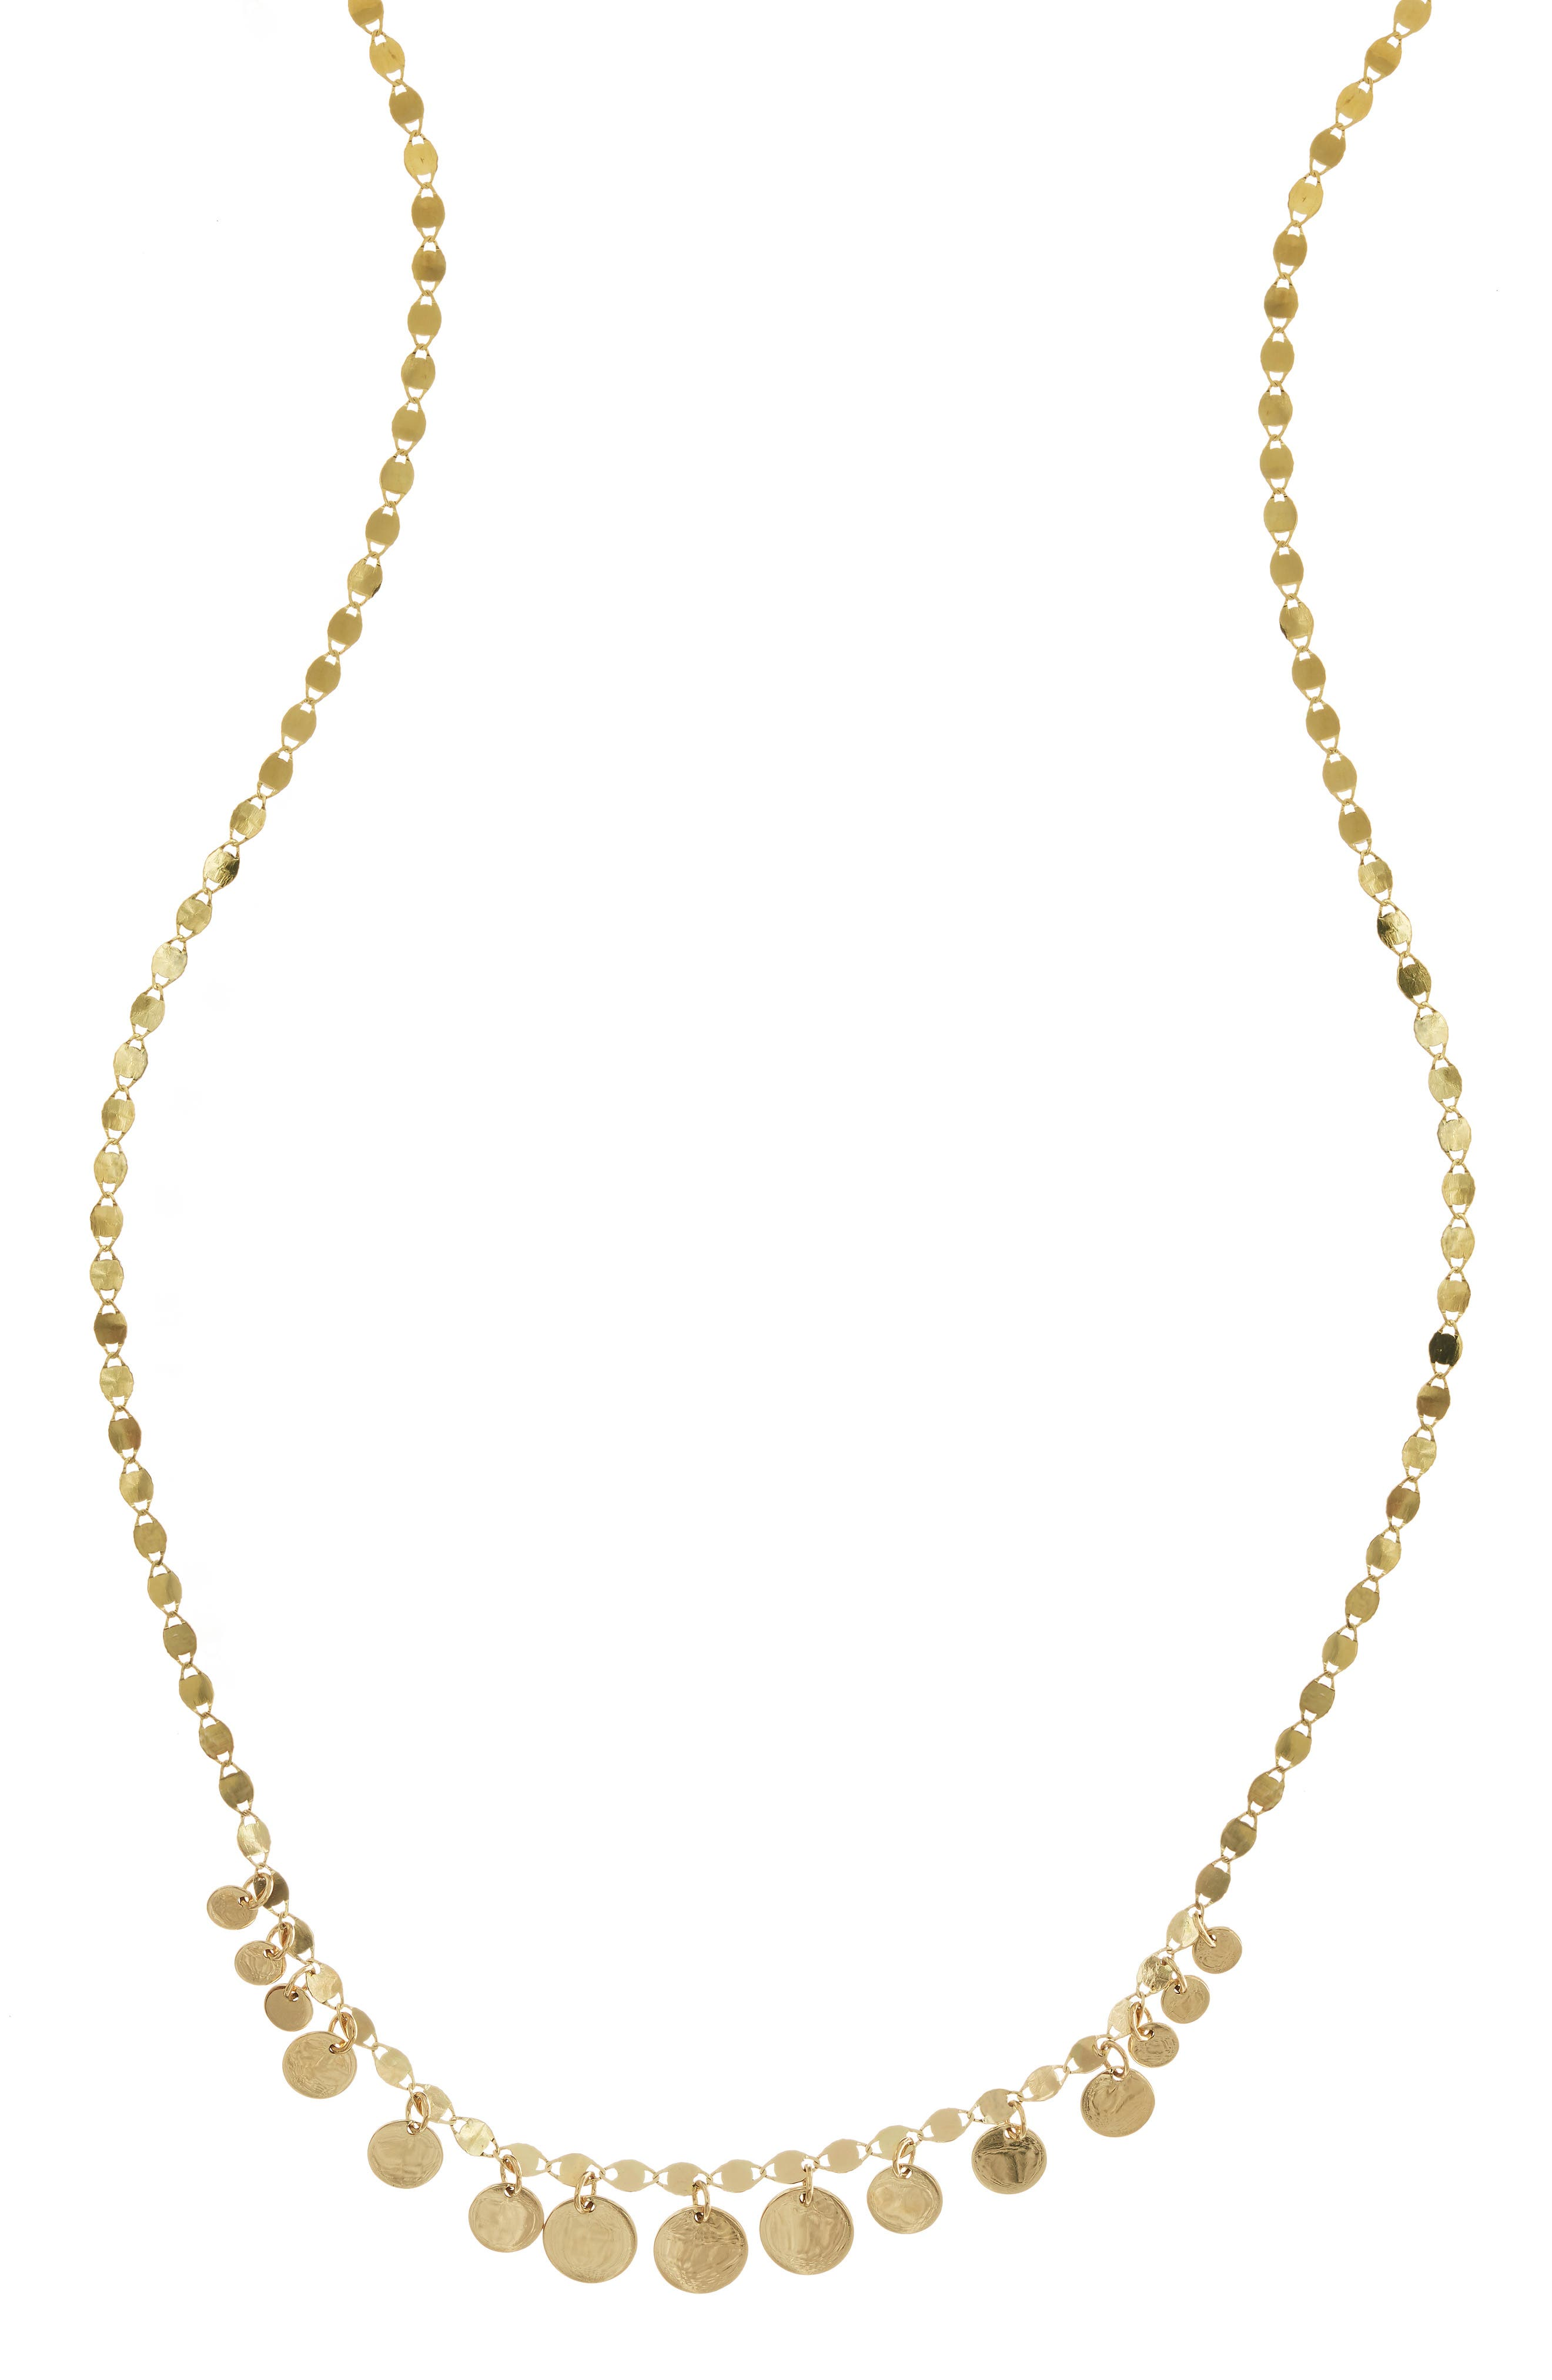 Alternate Image 1 Selected - Lane Jewelry Frontal Necklace